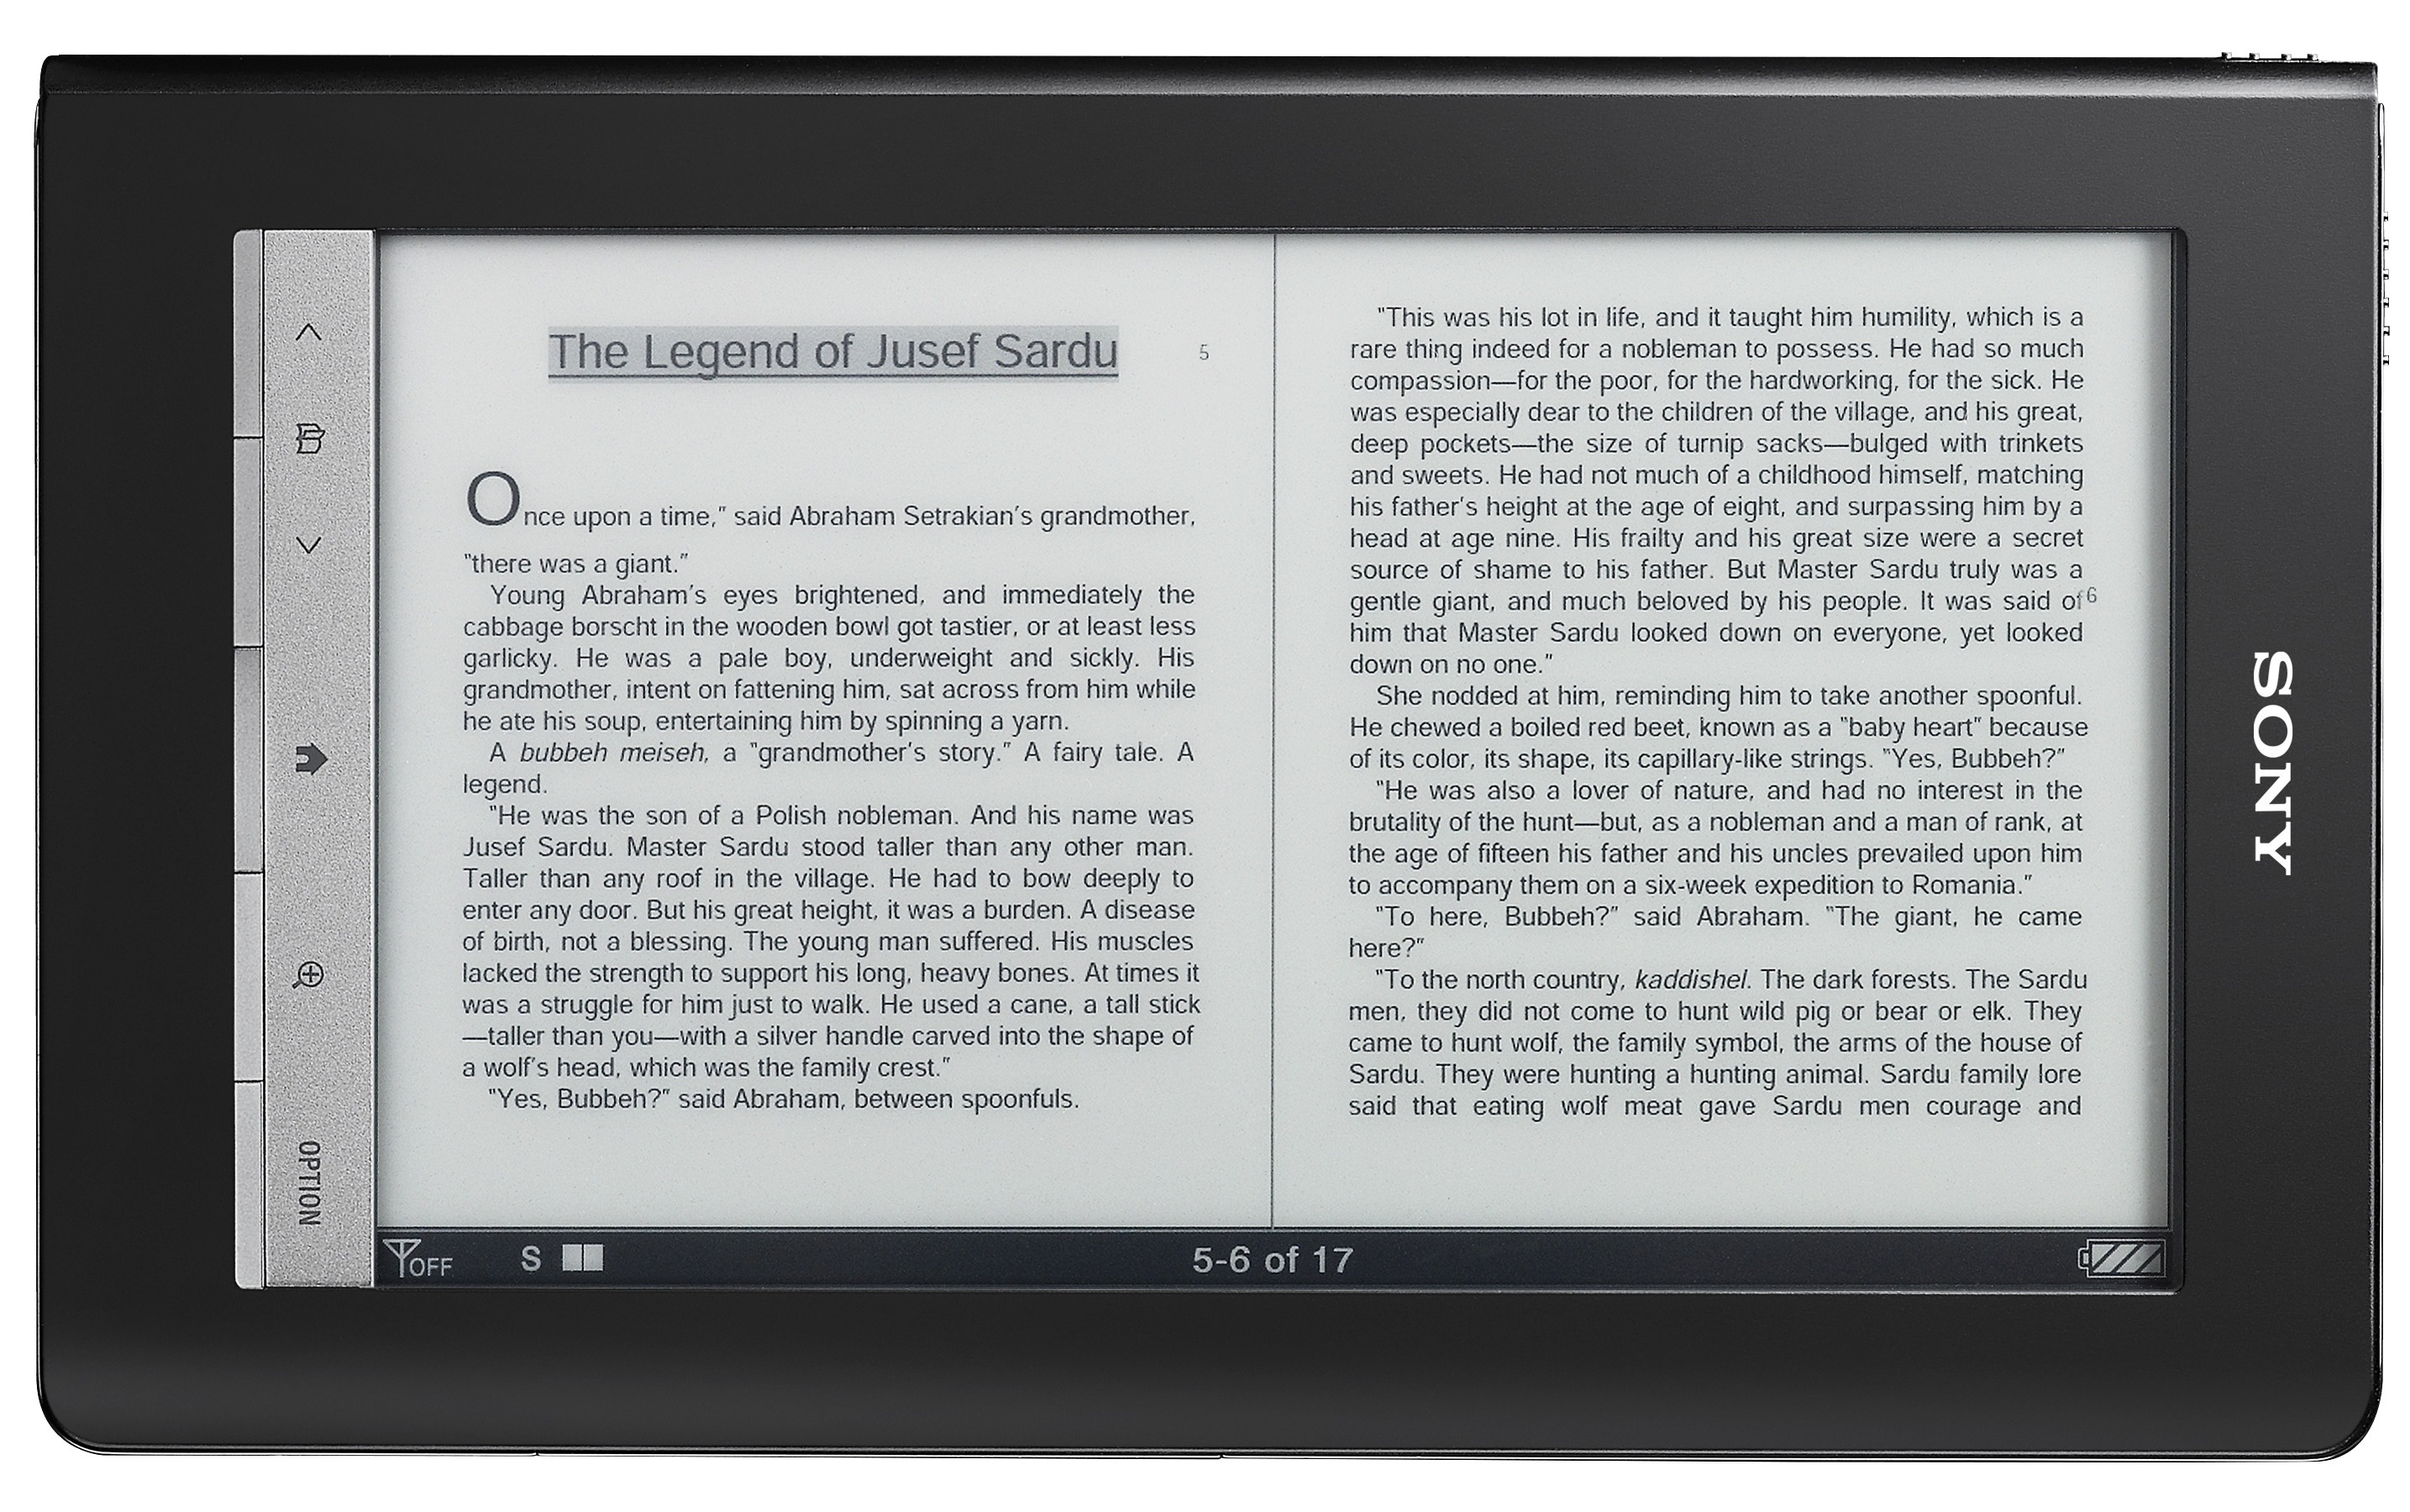 Sony Reader Daily Edition: 3G and 7-inch touchscreen for $399